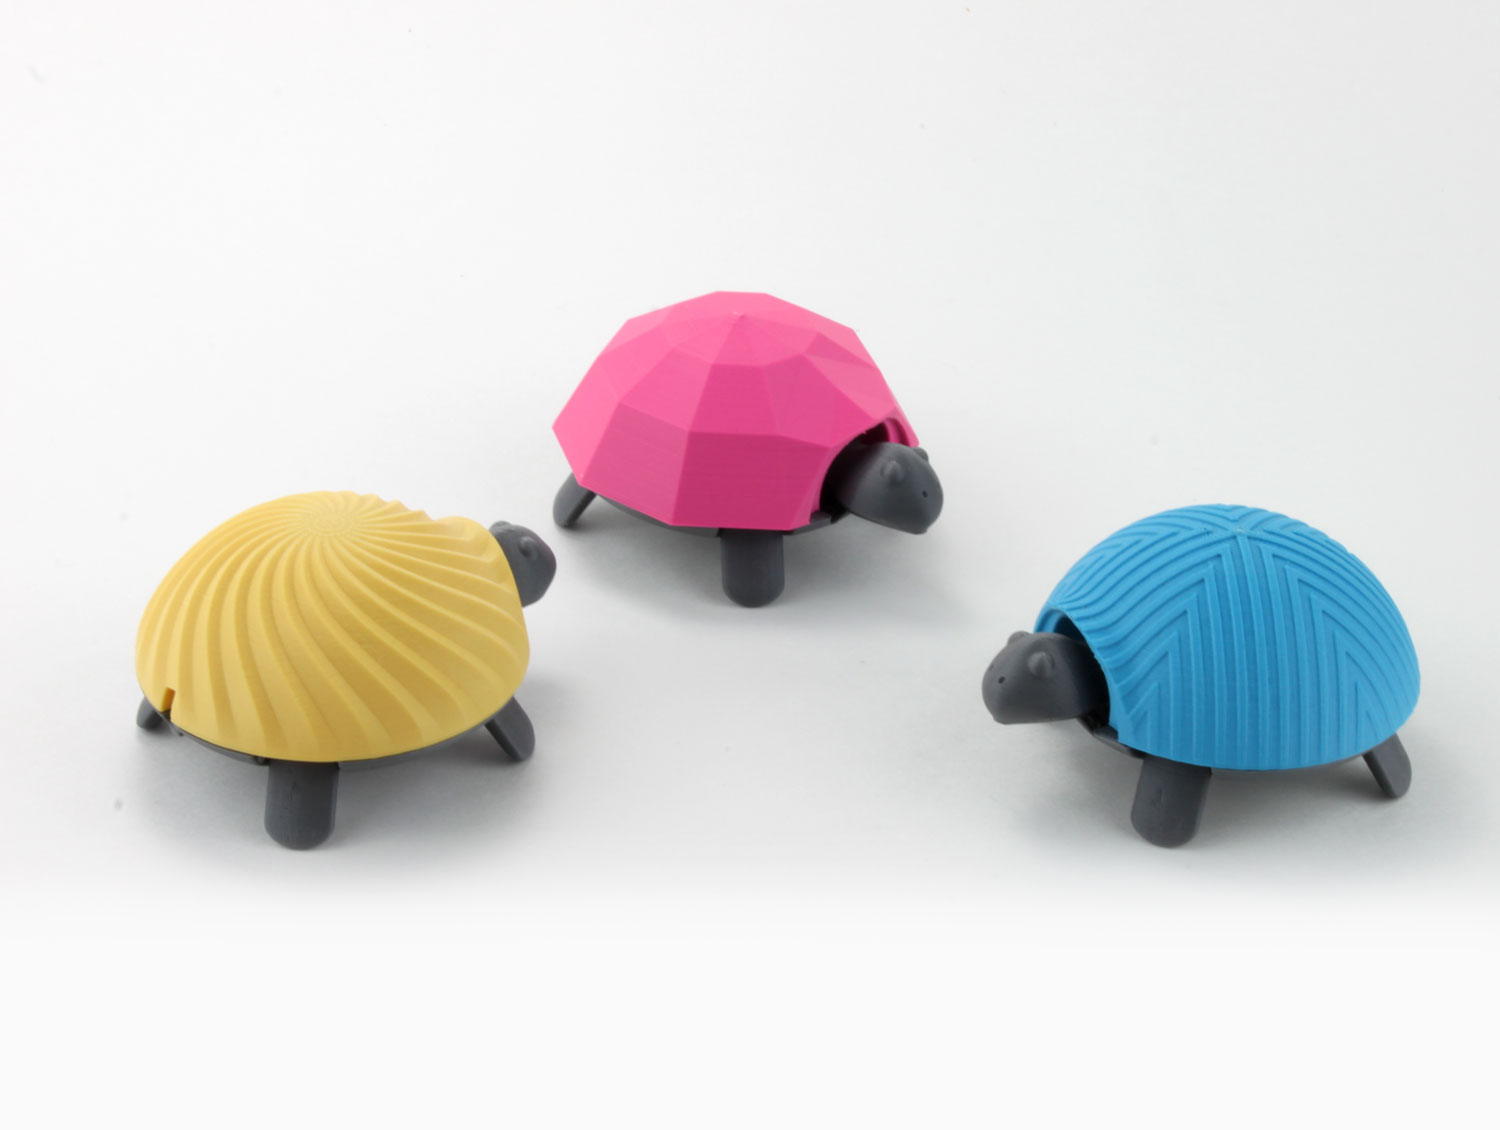 cmyk group 3d printed squishy turtle nature animal toy kids project design colorful